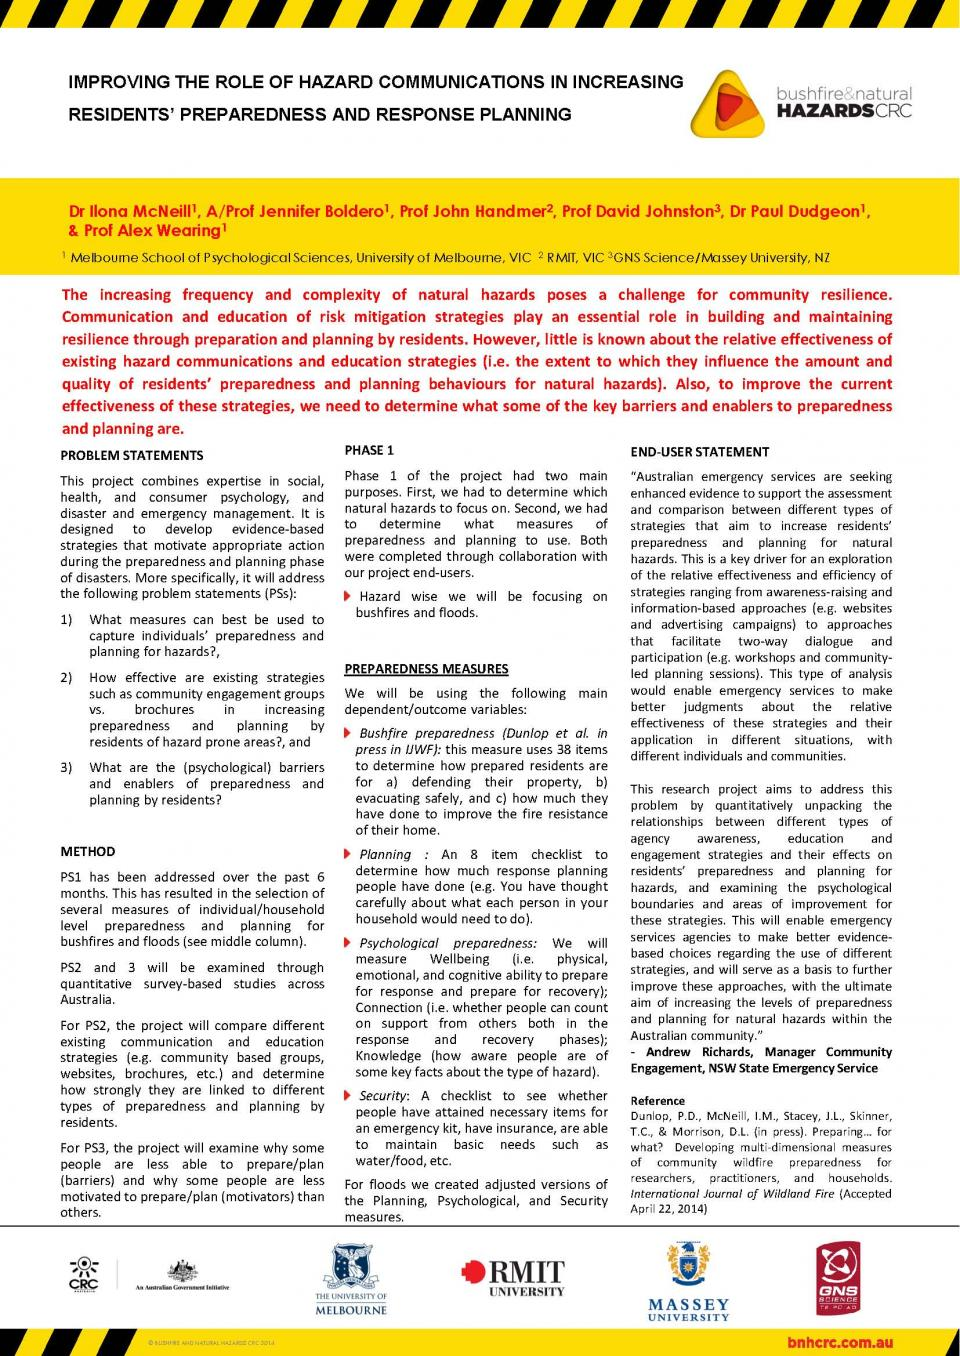 Improving the role of hazard communications in increasing residents' preparedness and response planning